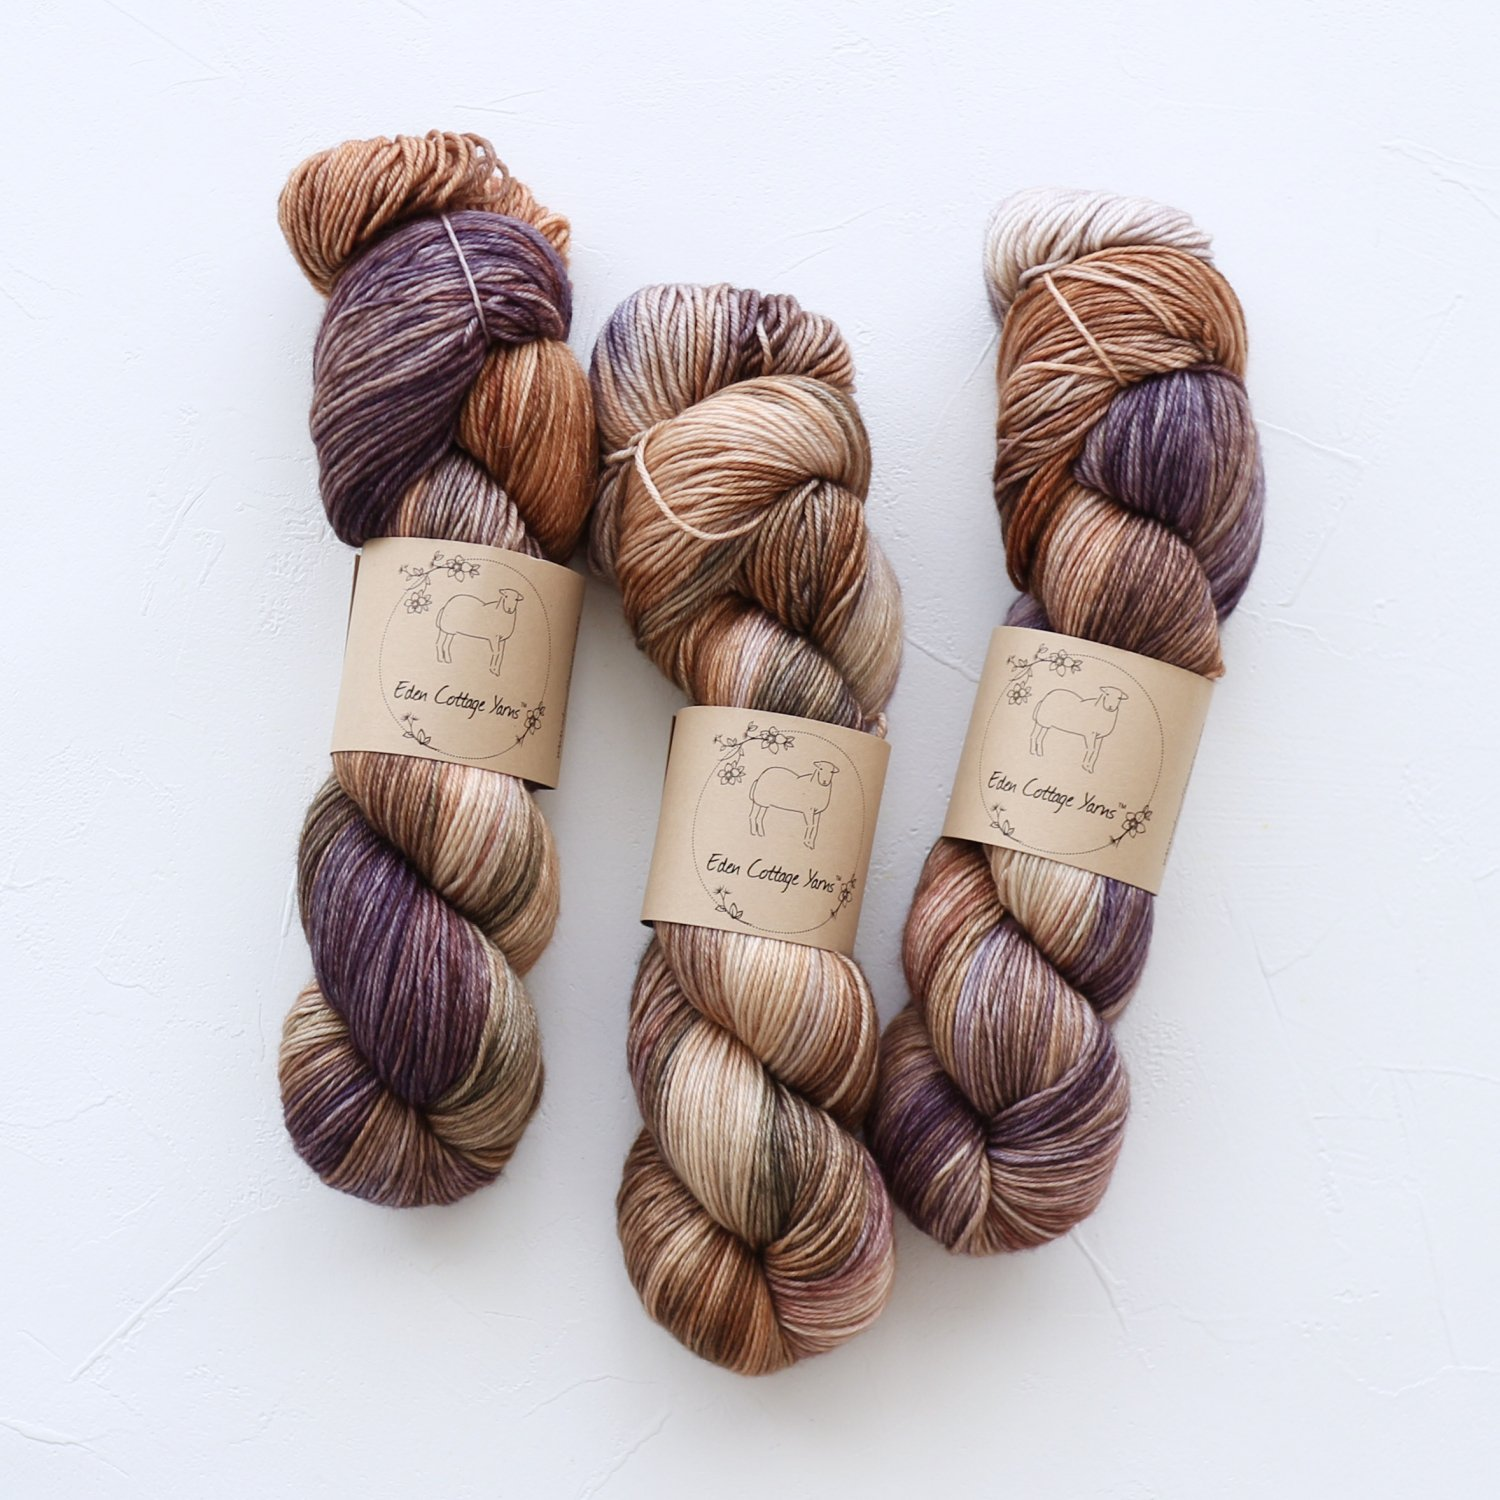 【Eden Cottage Yarns】<br>Pendle 4ply<br>Woodpile